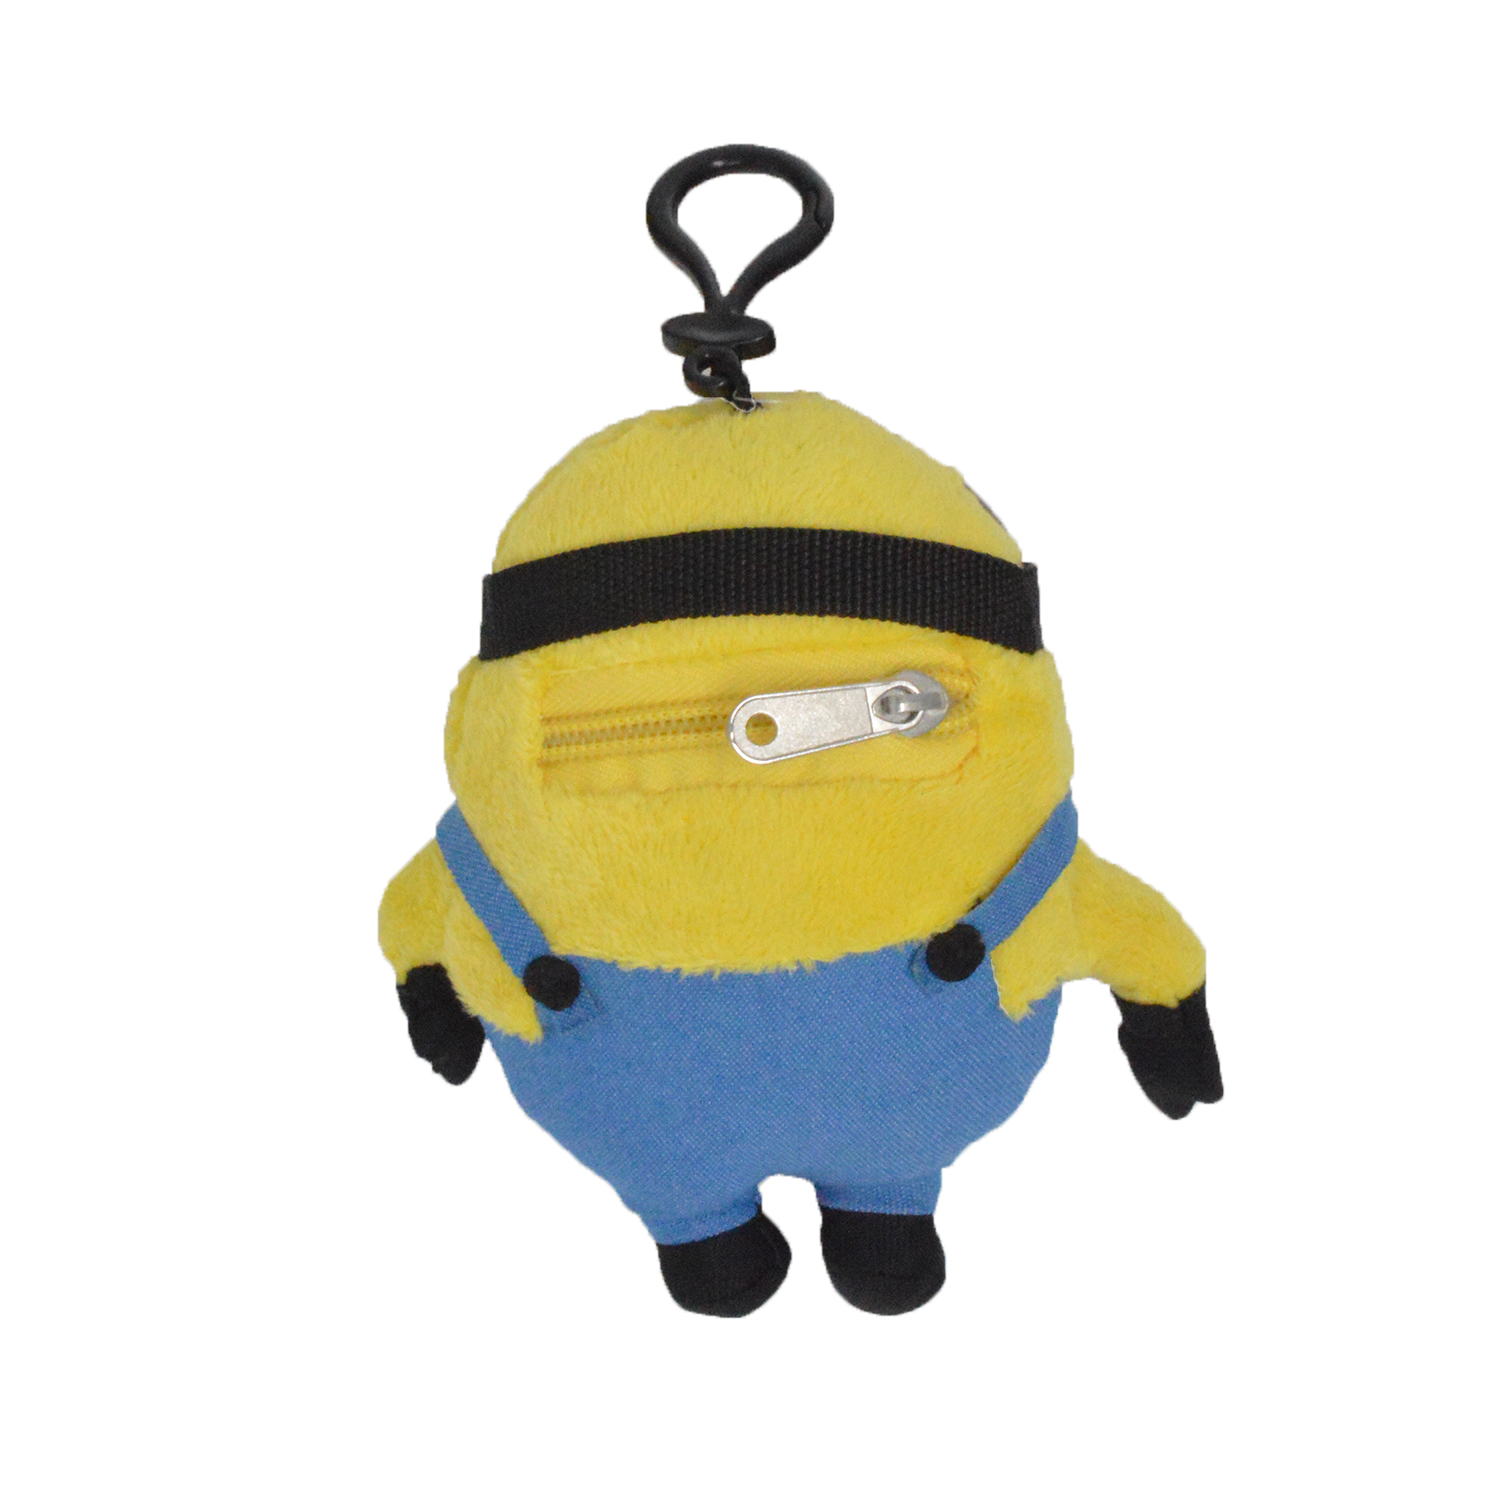 Cartoon-Plush-Coin-Clip-Toy-Bag-with-Zipper-for-Backpacks-Multiple-Styles thumbnail 12